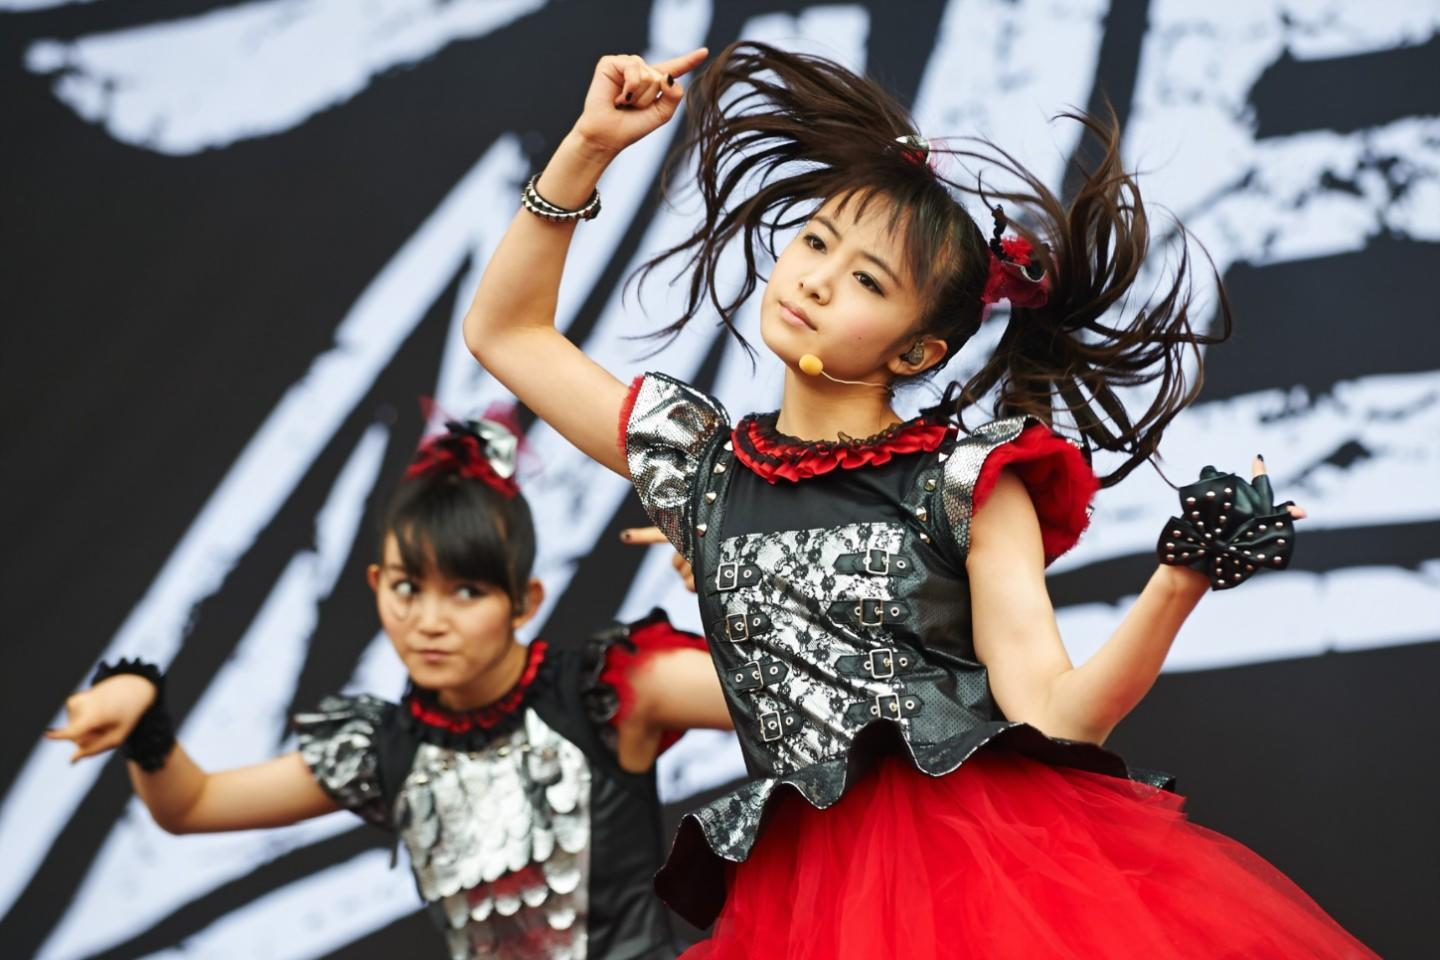 Babymetal Tour 2020.Babymetal Tickets Babymetal Tour Dates 2020 And Concert